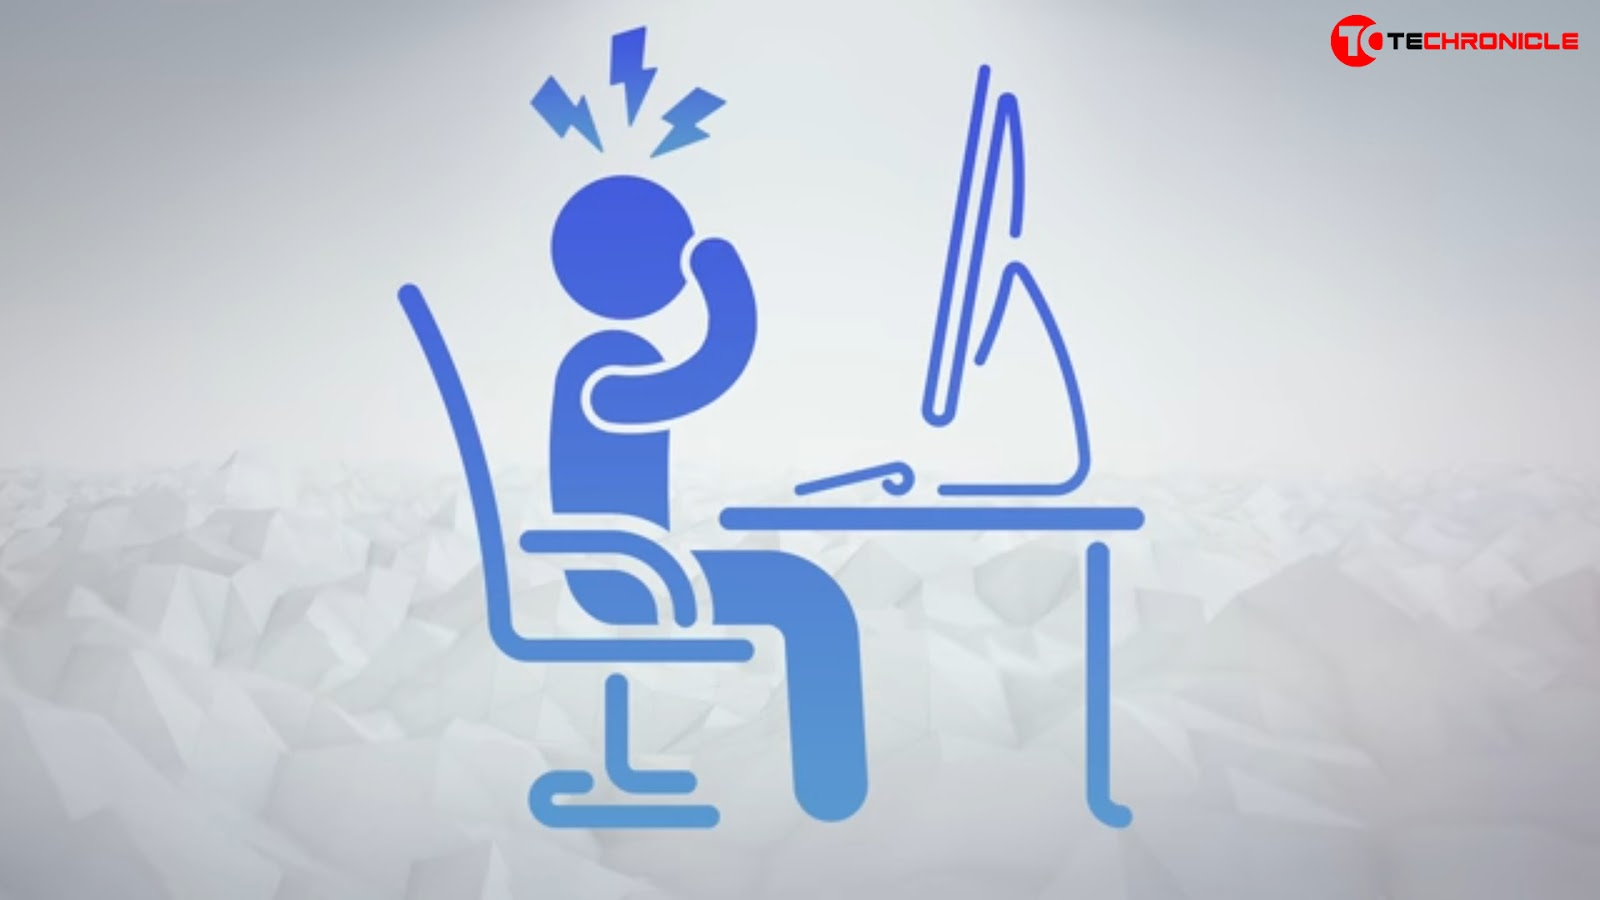 Man rubbing eyes laptop vector image Techronicle